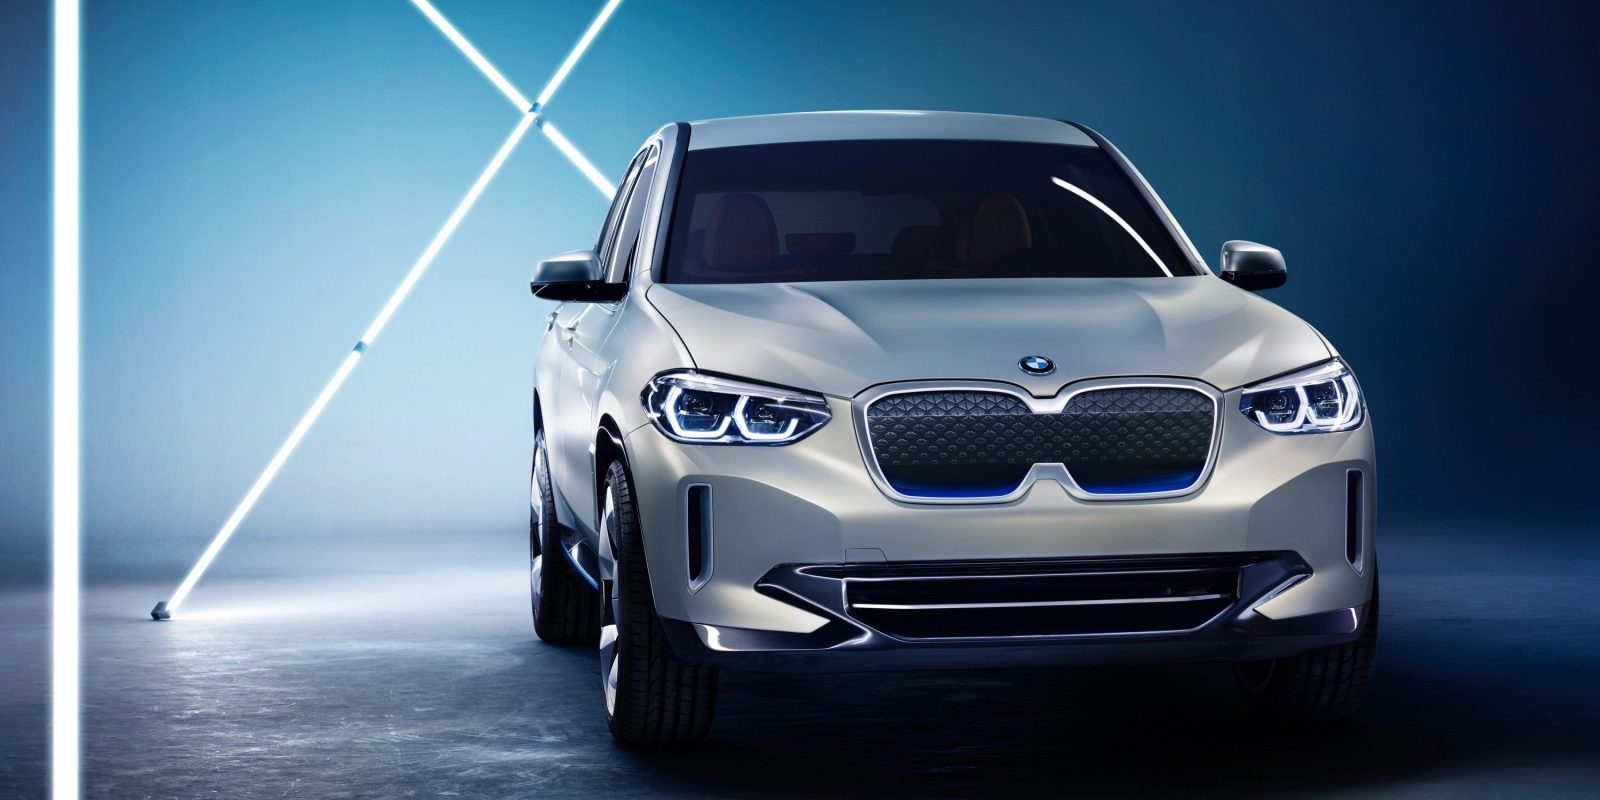 Bmw Starts Taking Orders For Electric Ix3 Suv As German Automakers Are All Unveiling New Suvs